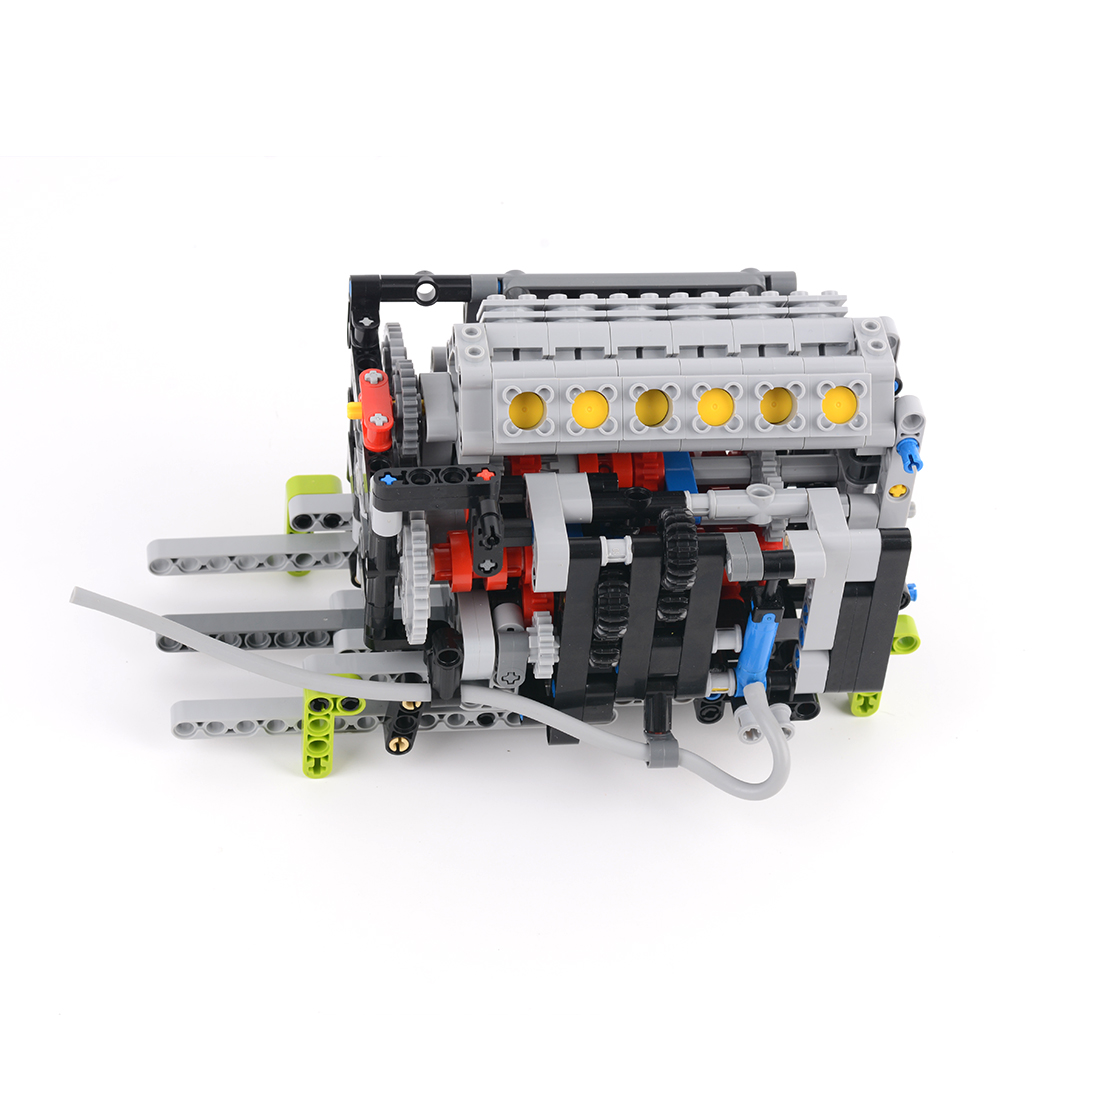 New 516Pcs V12 Engine Integrated Module MOC Small Particle Building Block Kit Assembly Model Kids Boys Christmas Gifts 2019